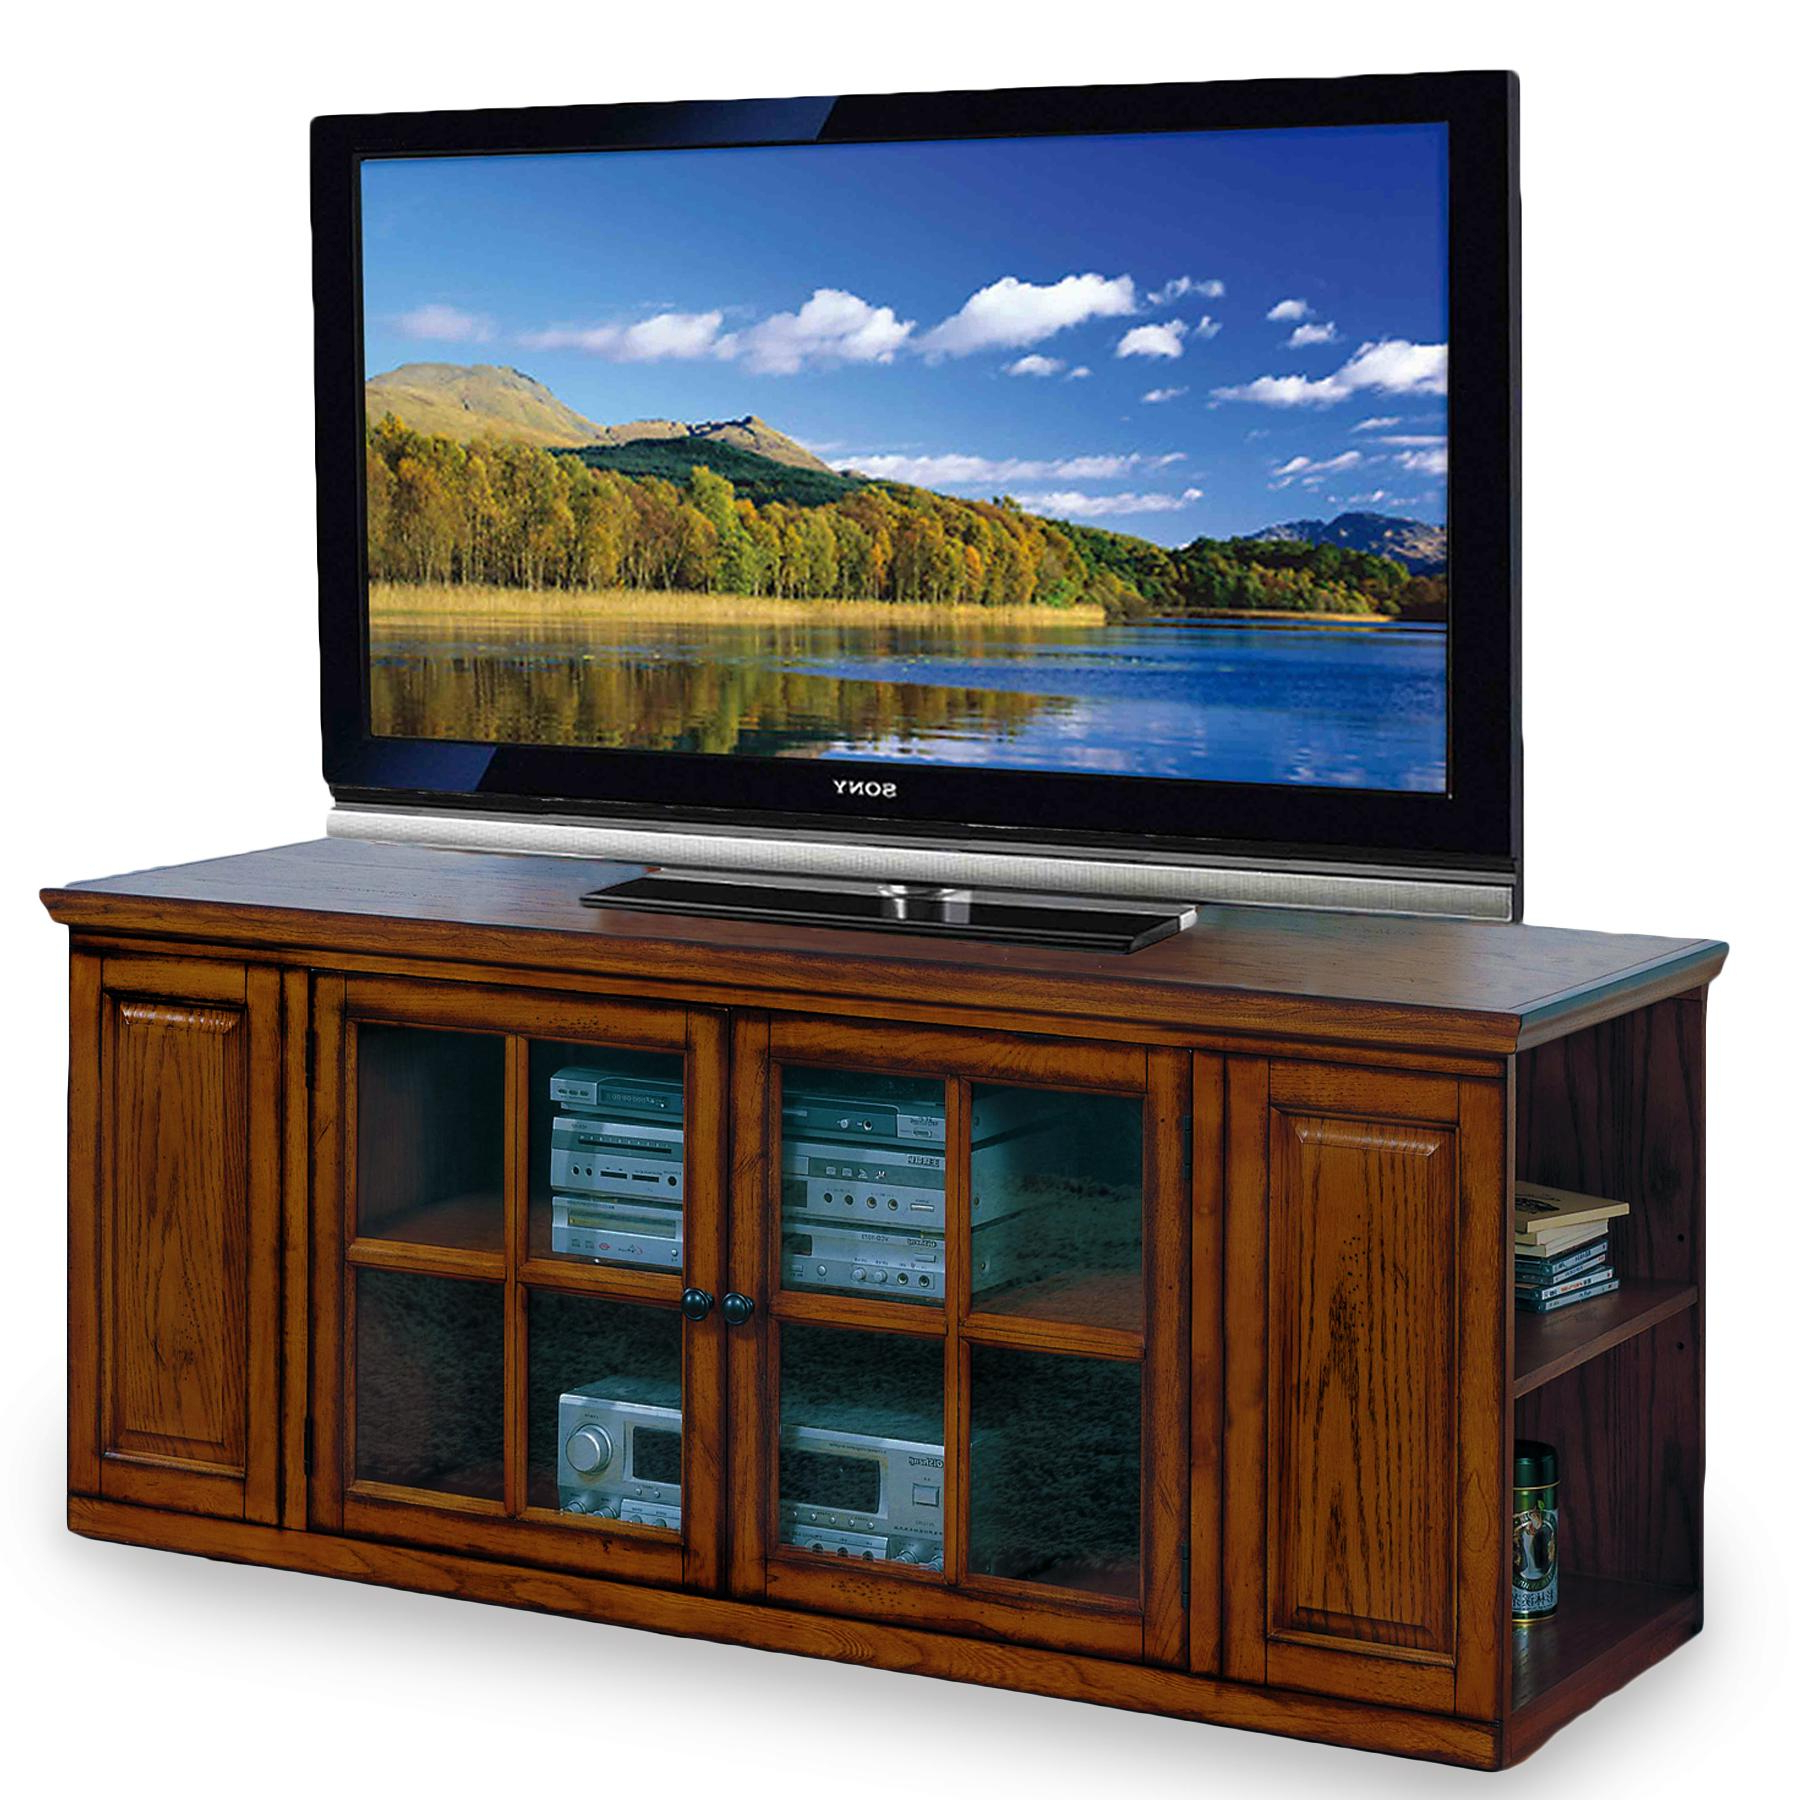 Most Current 40 Inch Corner Tv Stands Pertaining To Amazon: Leick Riley Holliday Tv Stand, 62 Inch, Burnished Oak (View 8 of 20)